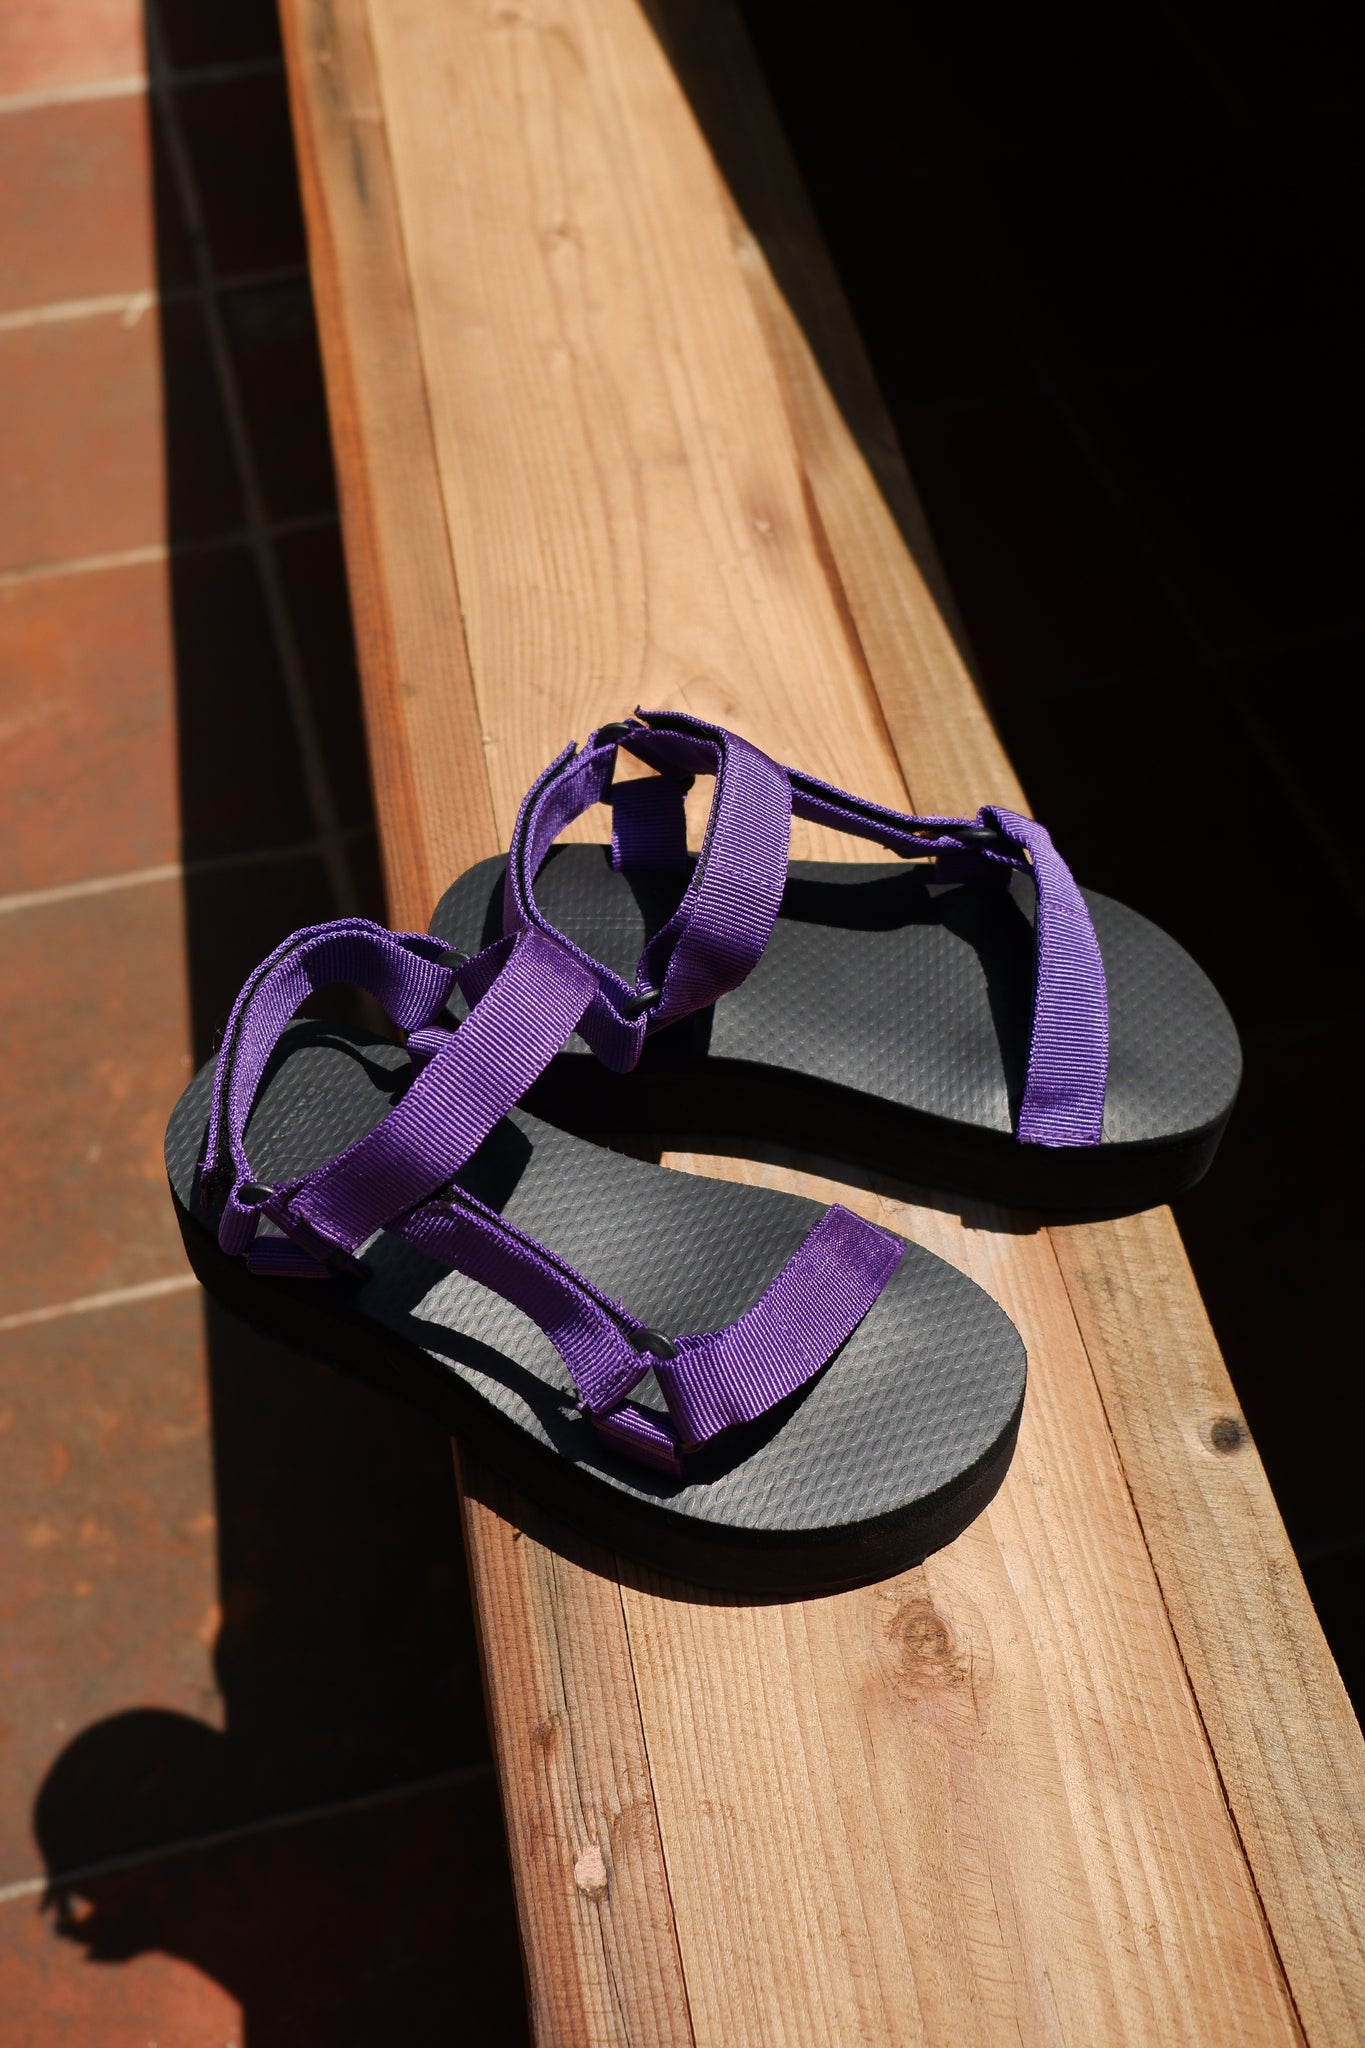 24mm Sporty Sandals in Ube